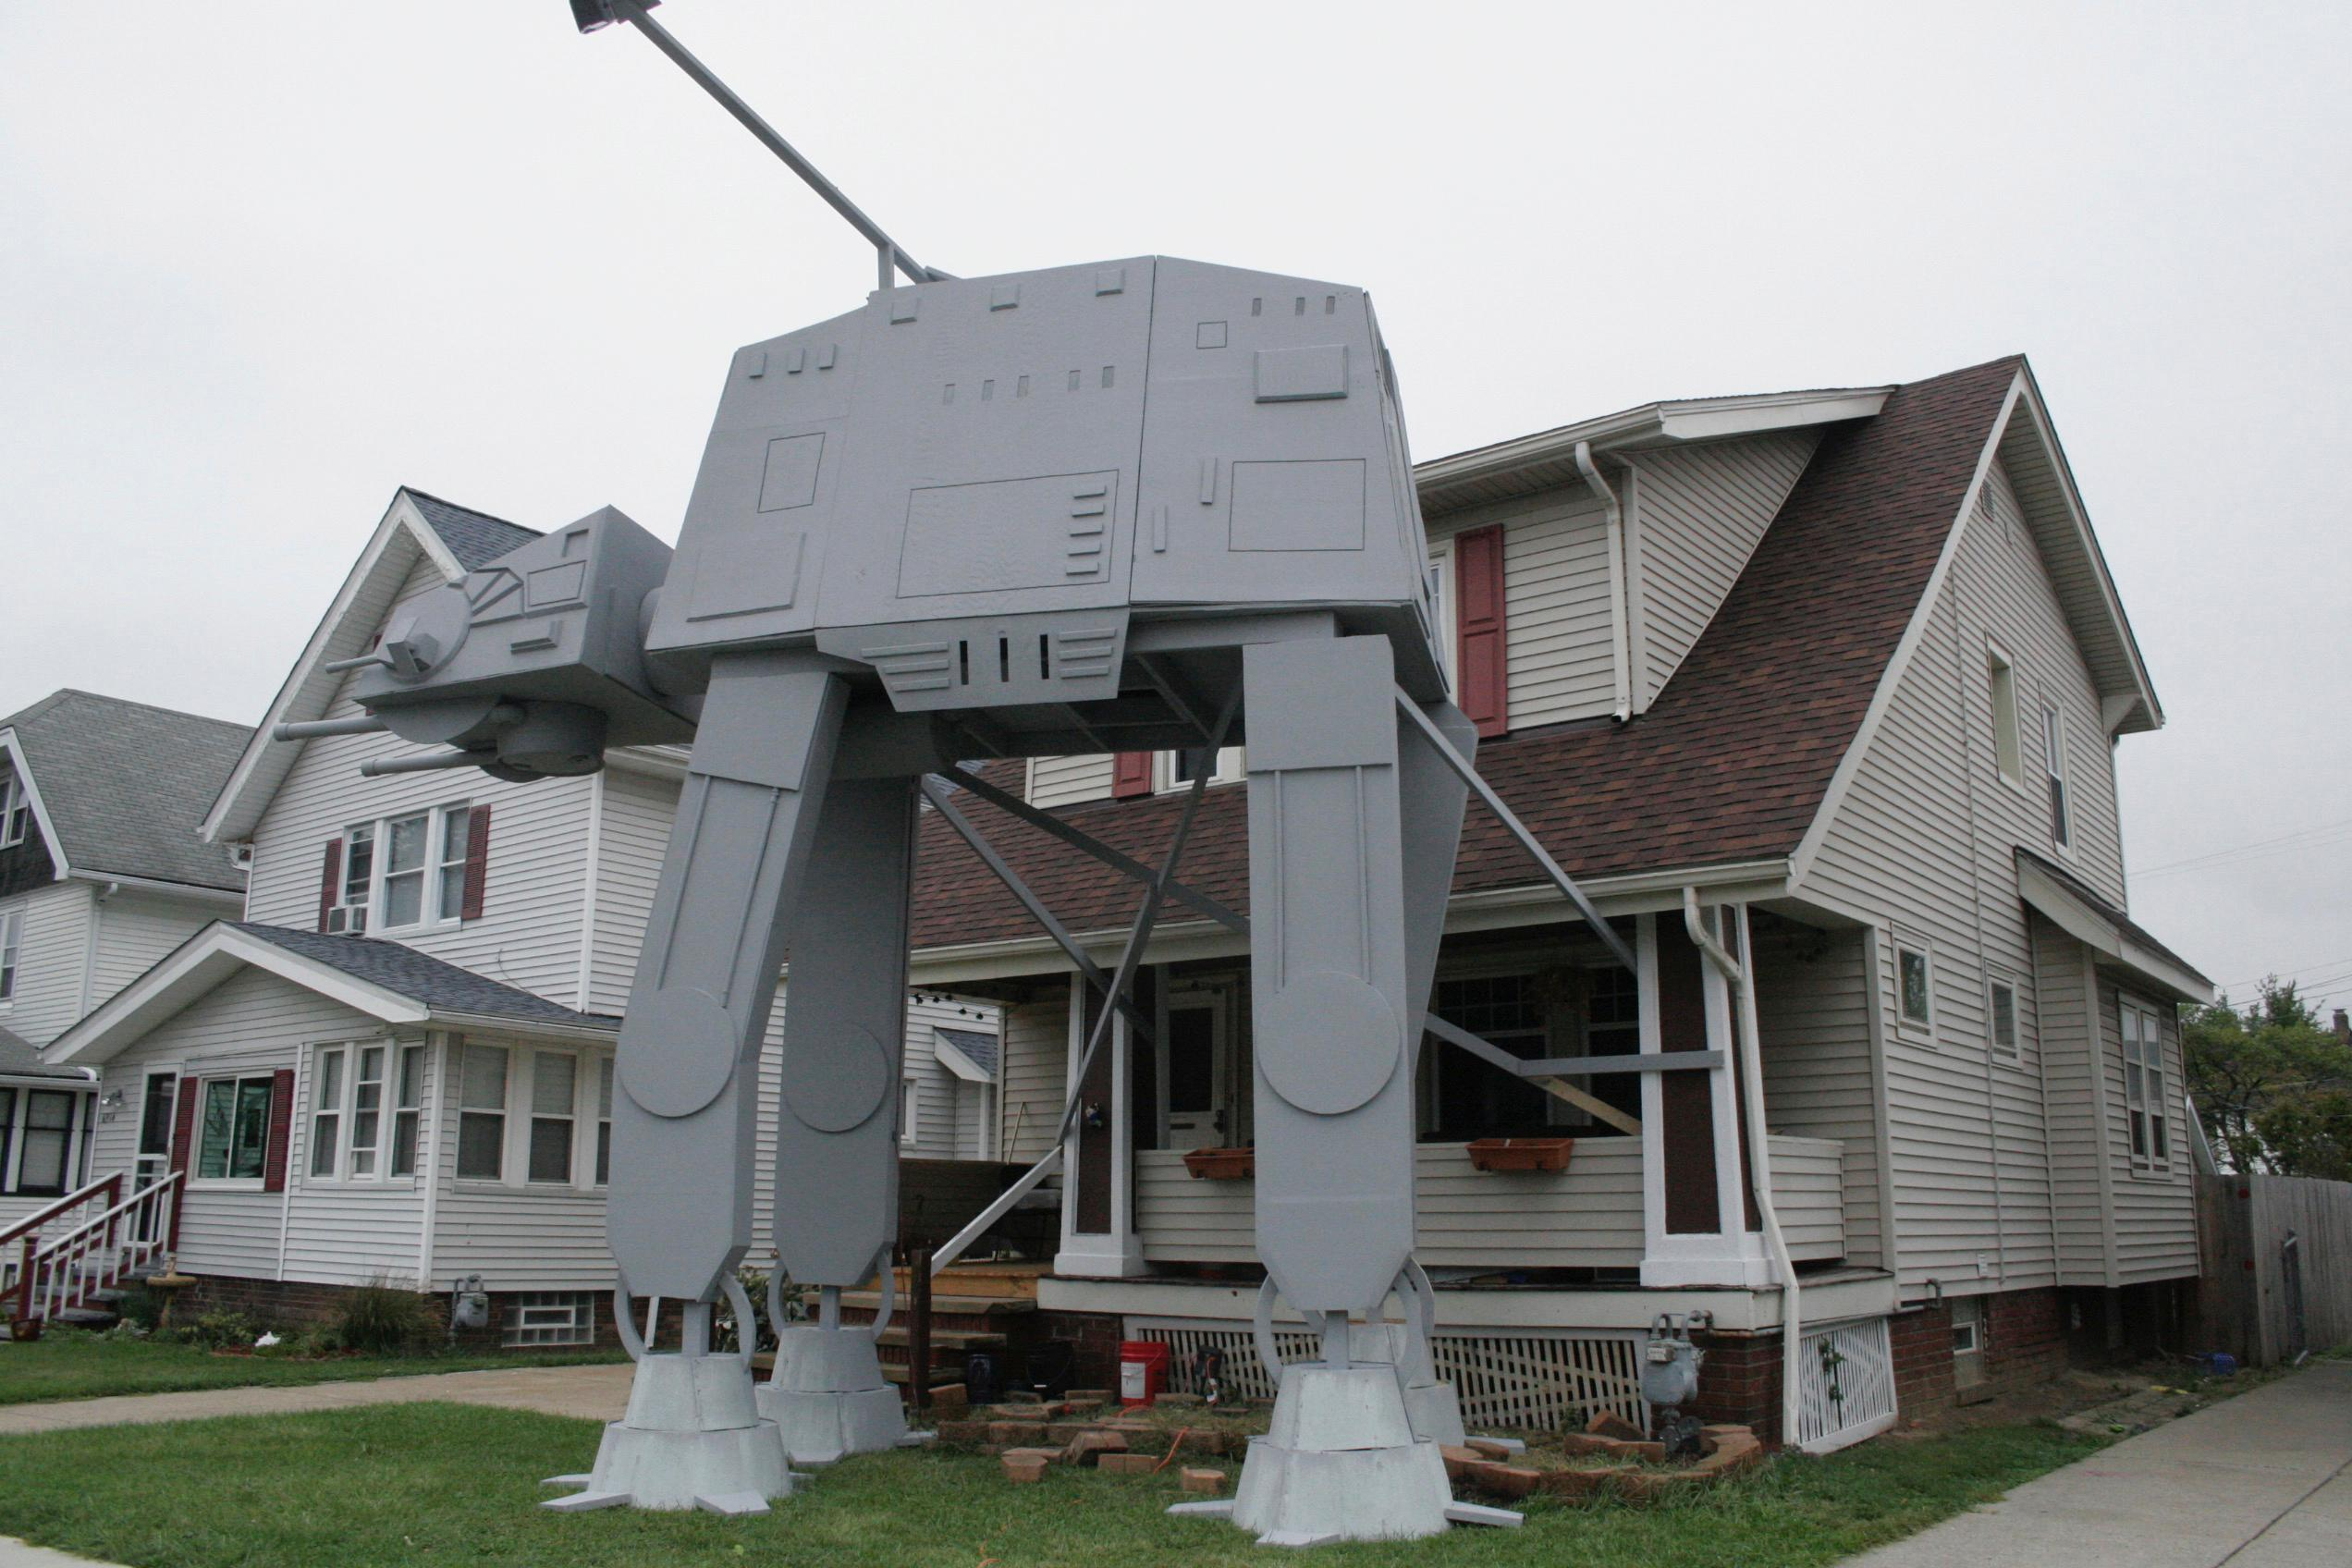 Ohio man builds 2-story 'Star Wars' vehicle replica for Halloween{&amp;nbsp;}(Patrick Cooley/The Plain Dealer-Cleveland.com via AP)<p></p>